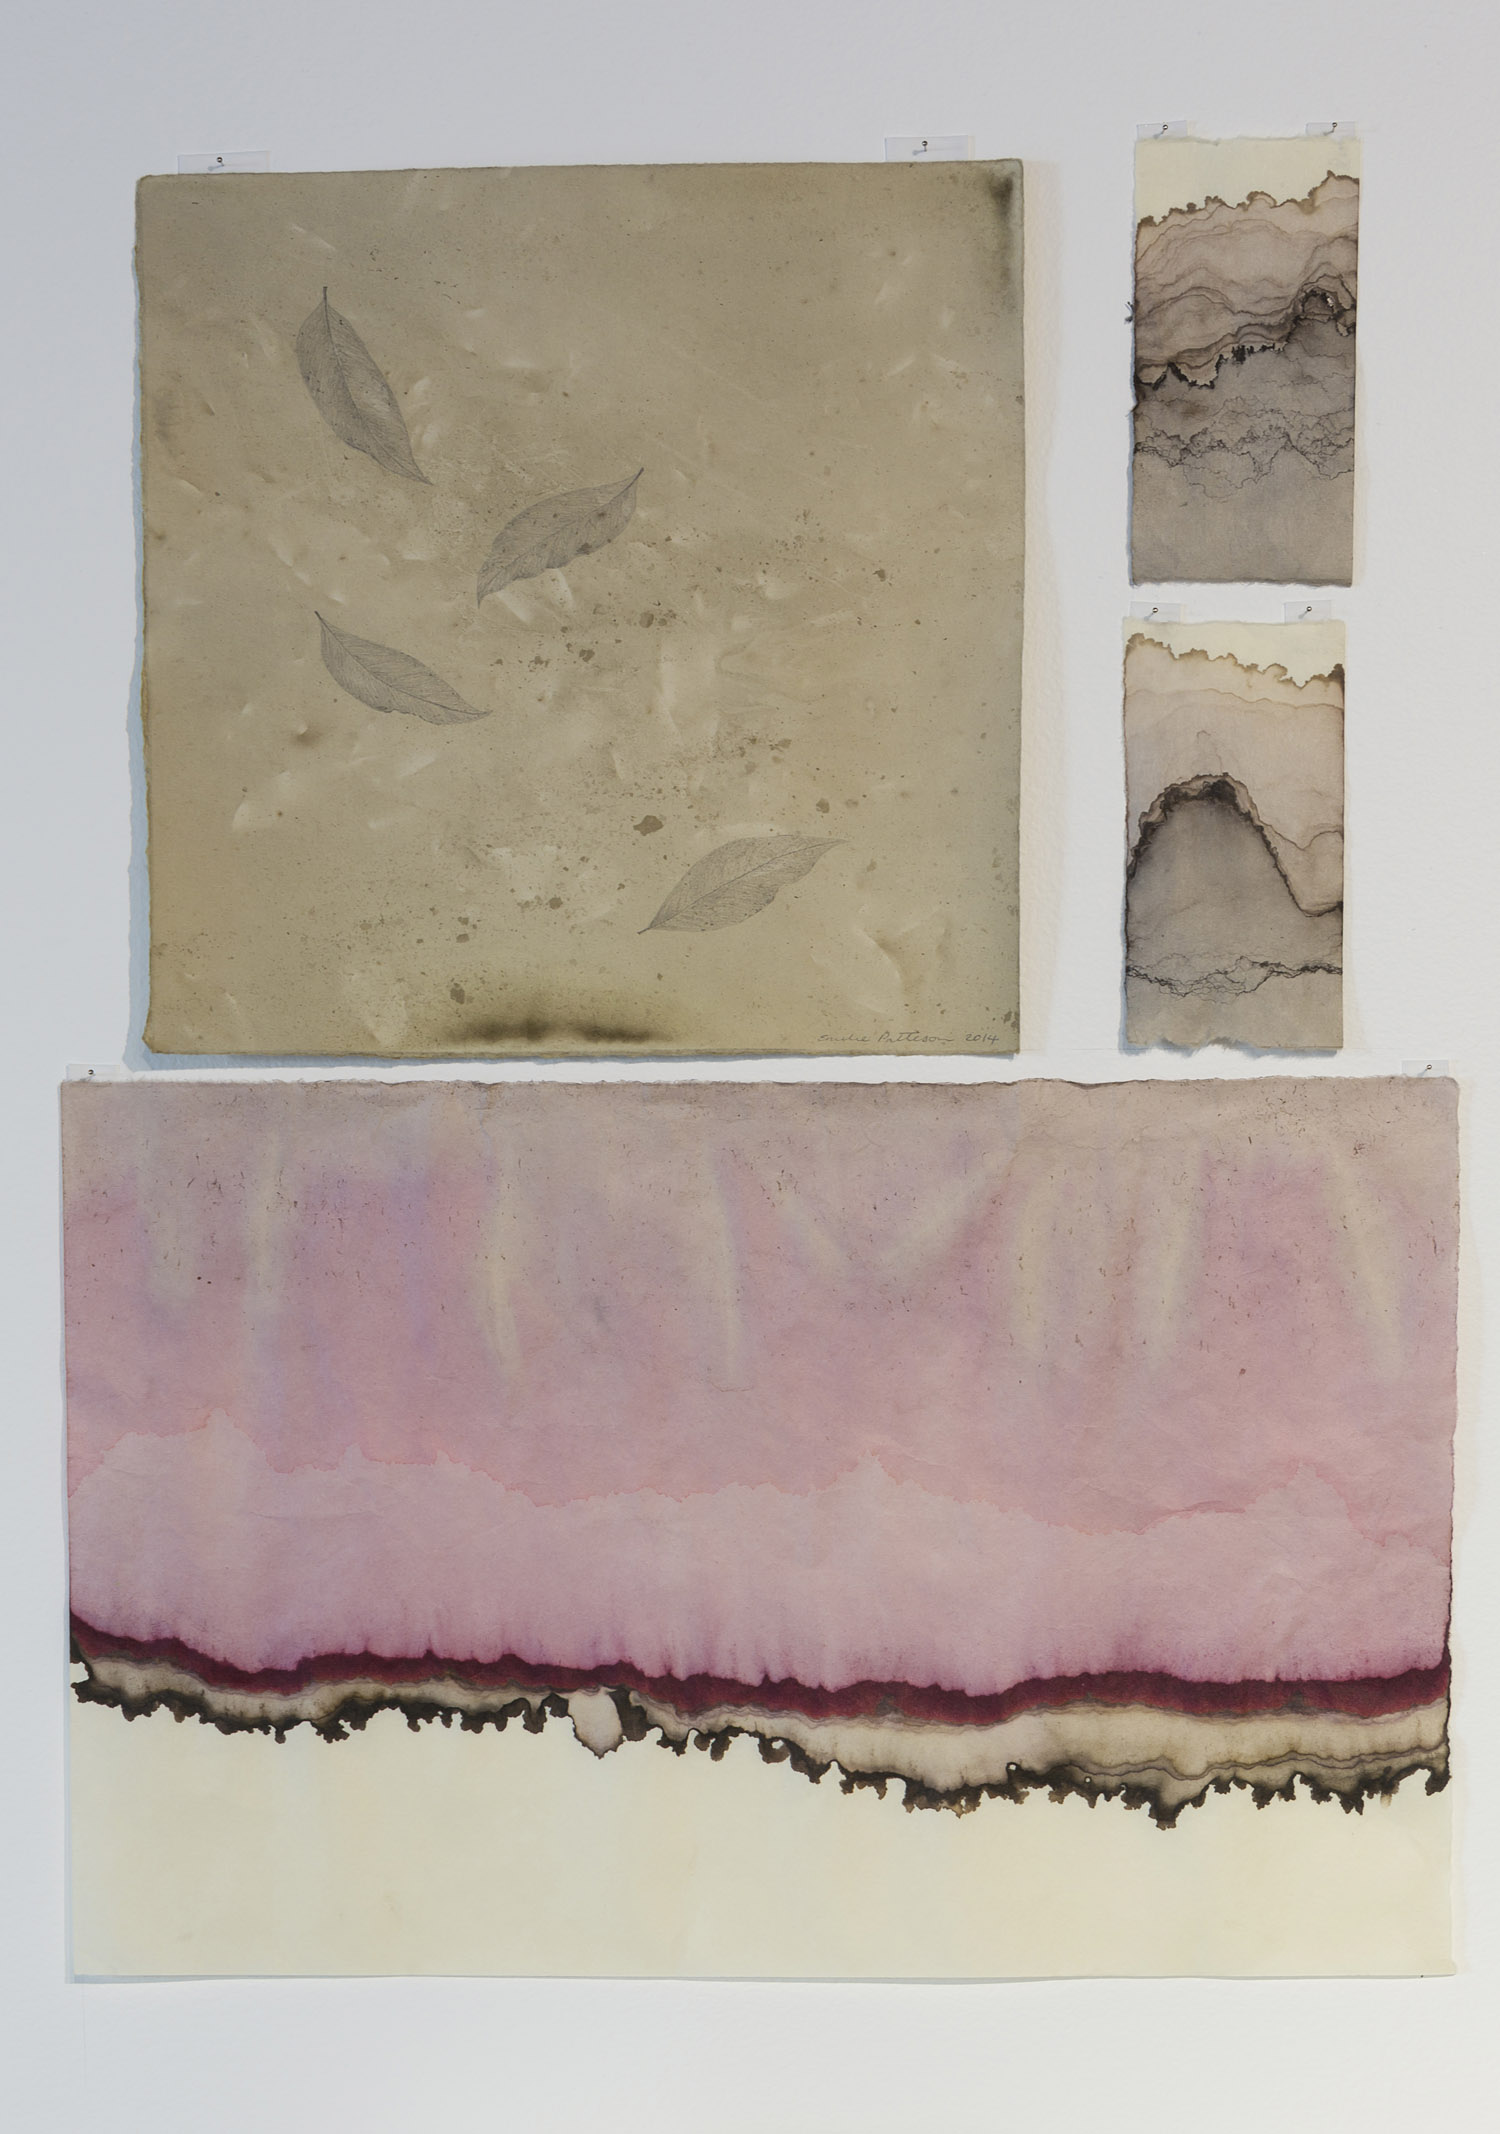 Infusion by Emilie Patteson (top left) with Topography by Annika Romeyn (right and bottom), natural dyes on paper, 2014, (photo by Adam McGrath), Canberra Glassworks GLINT exhibition install